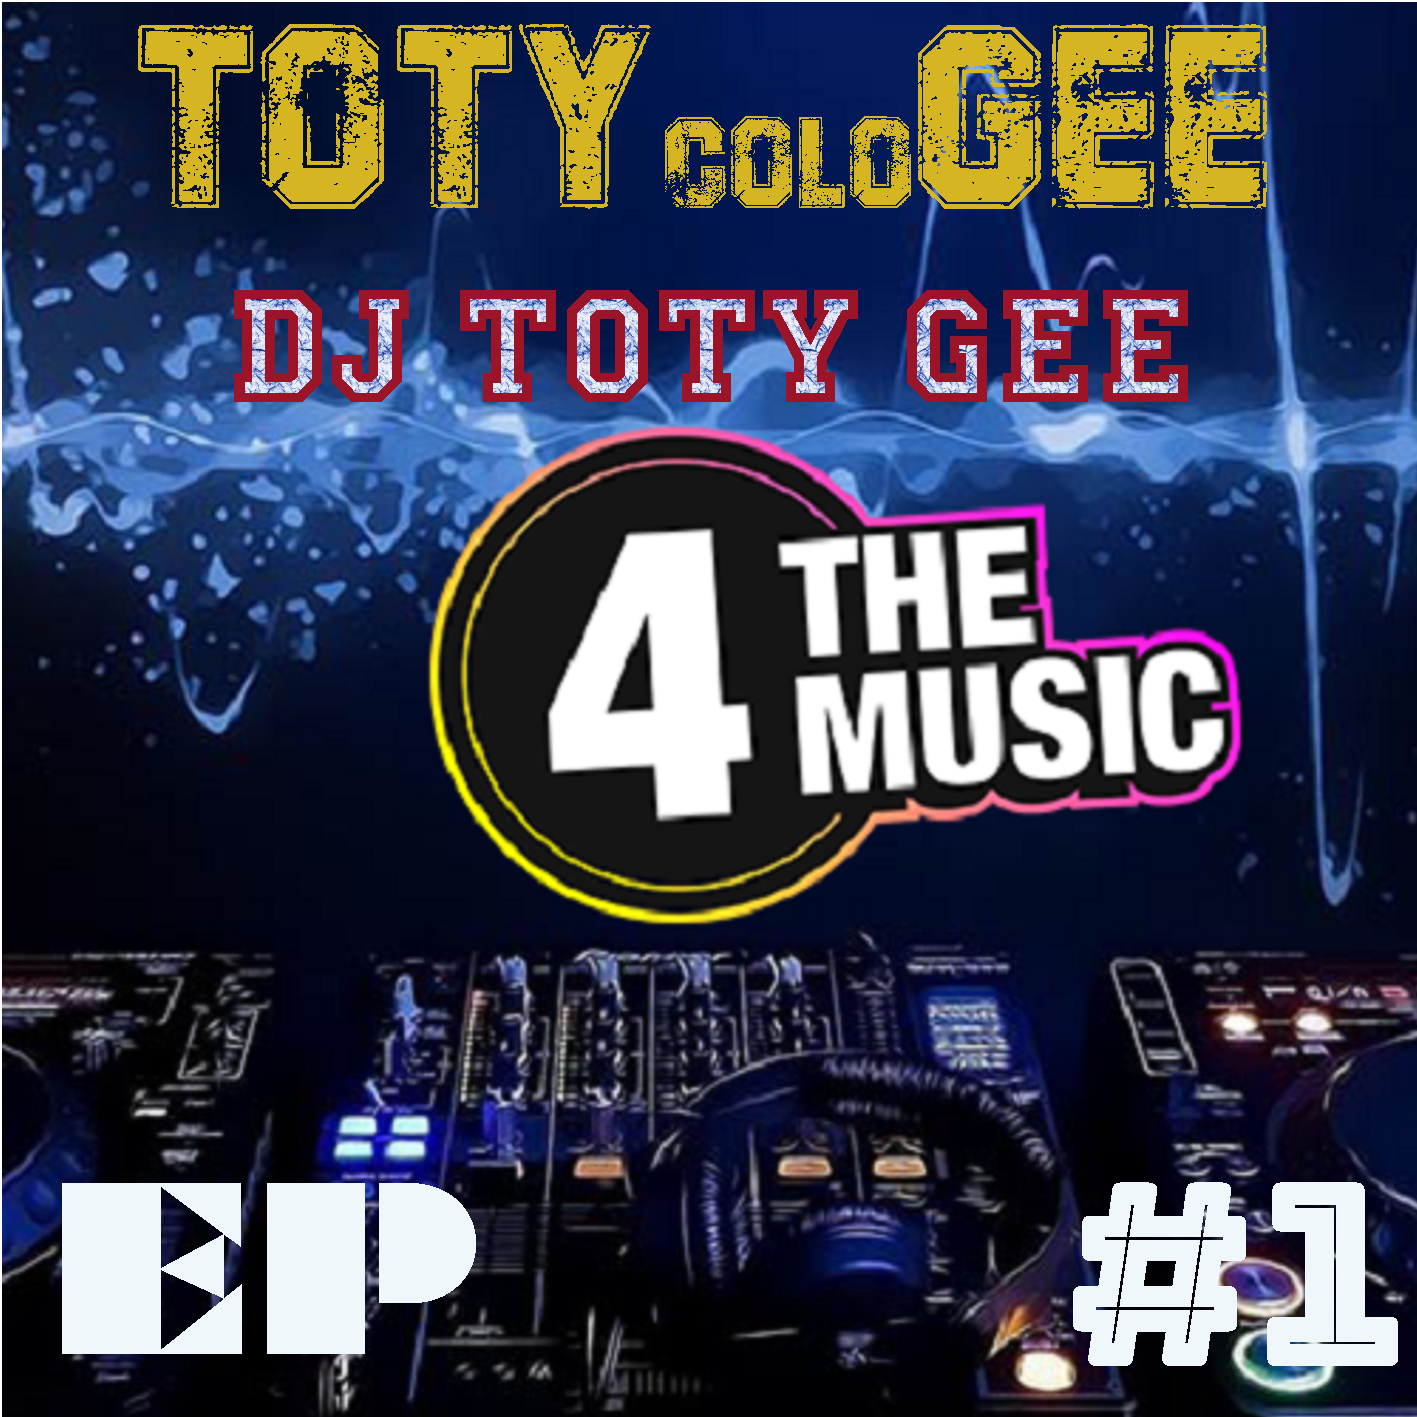 TOTYcoloGEE on 4TheMusicClub EP 1